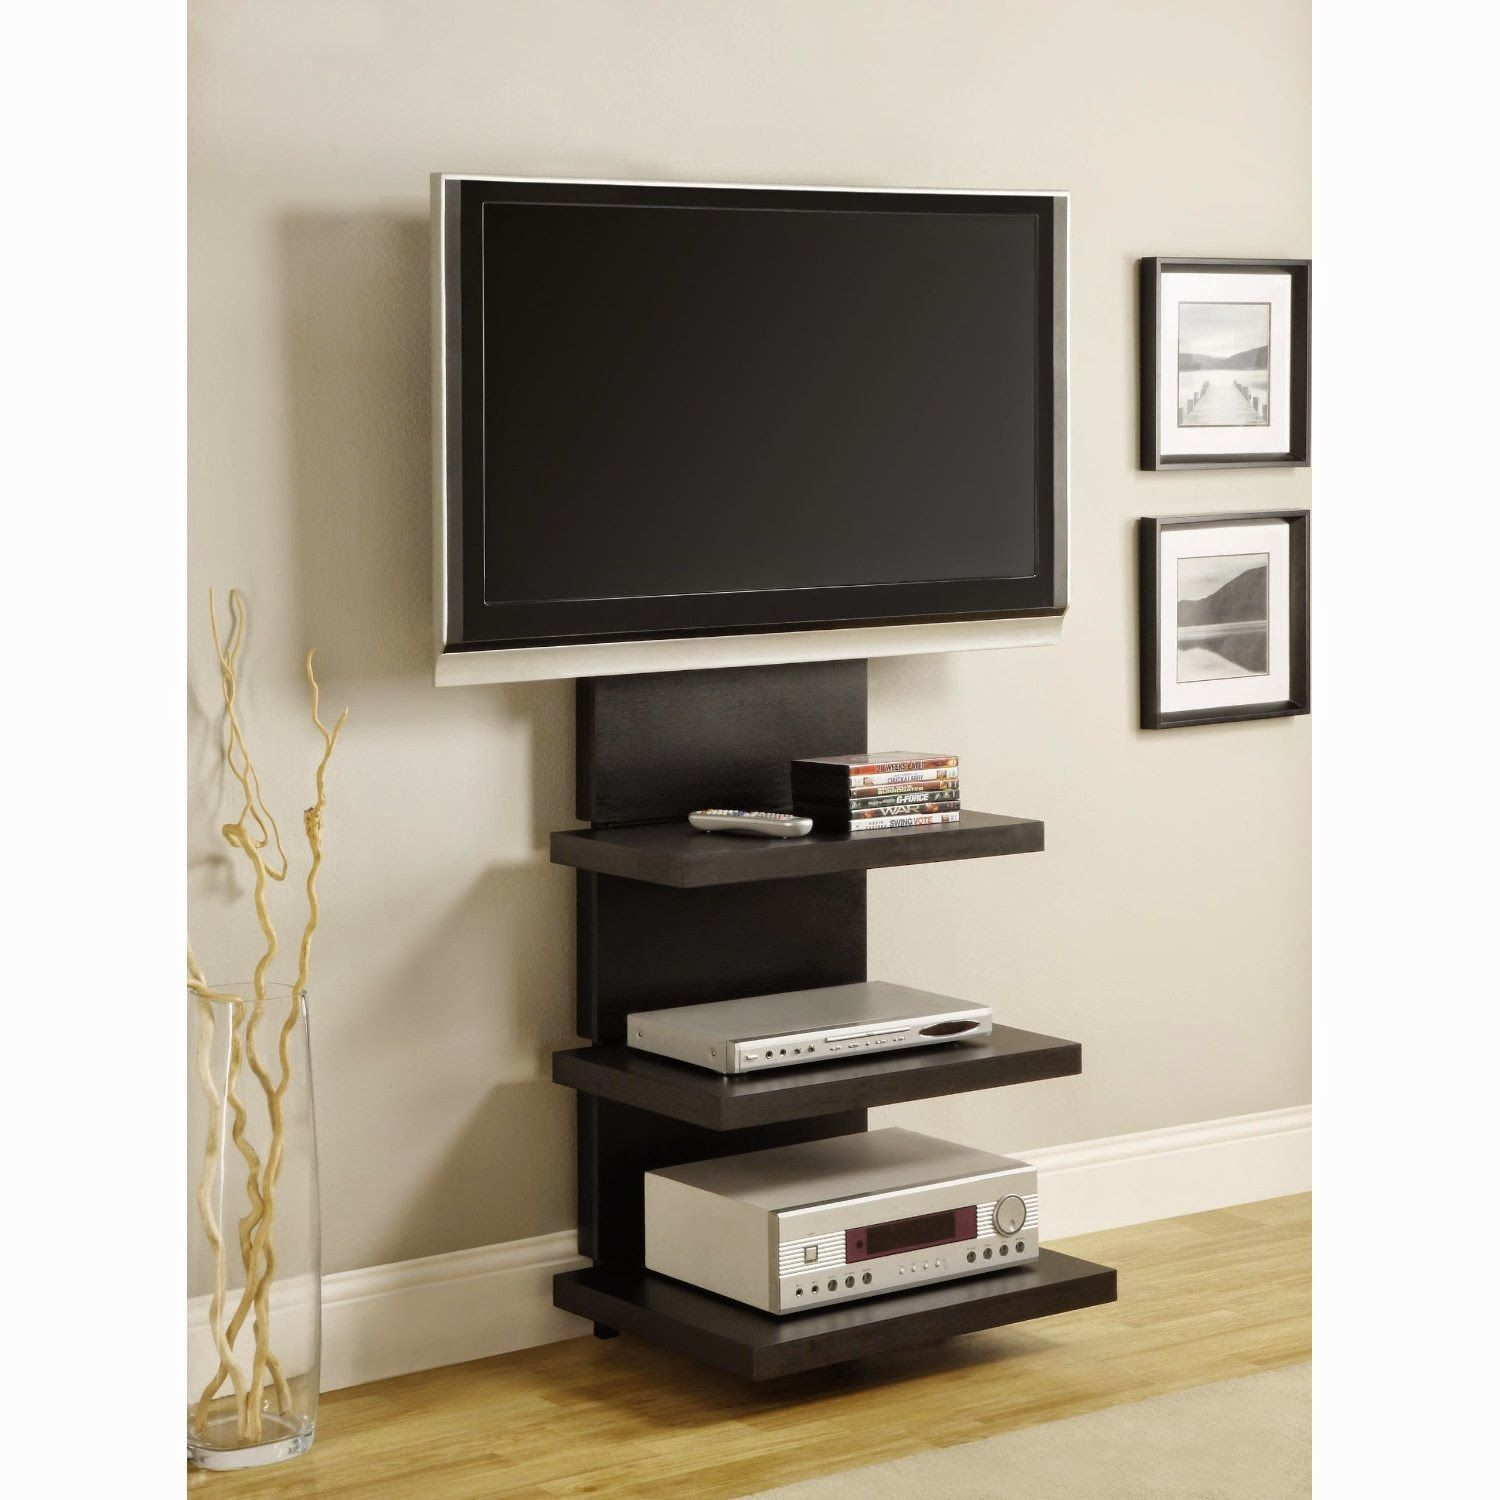 Fancy Tv Stand Wood Google Search Bedroom Tv Stand Tv Stand